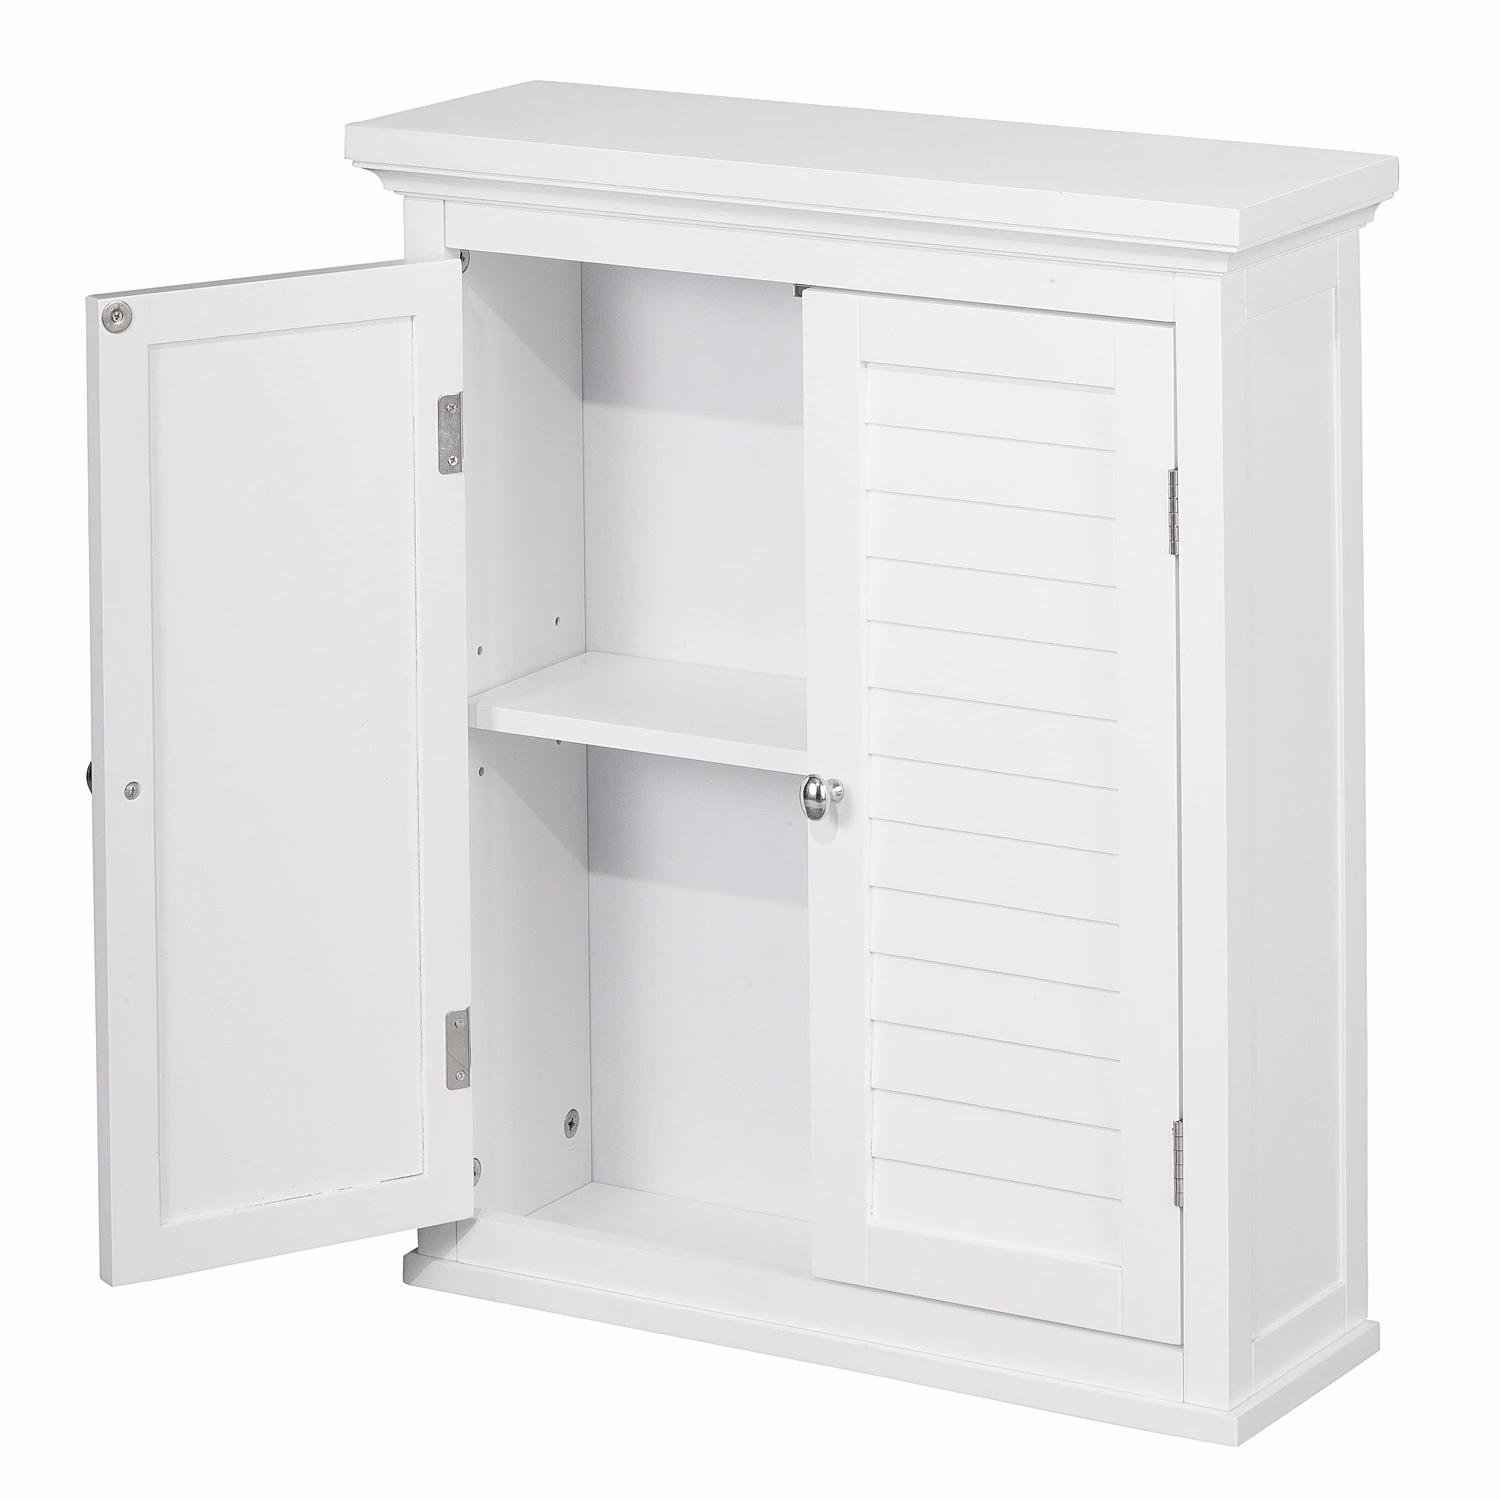 White Wood Bathroom Cabinets With Shutter Doors and Adjustable Shelving Includes Custom Mouse Pad